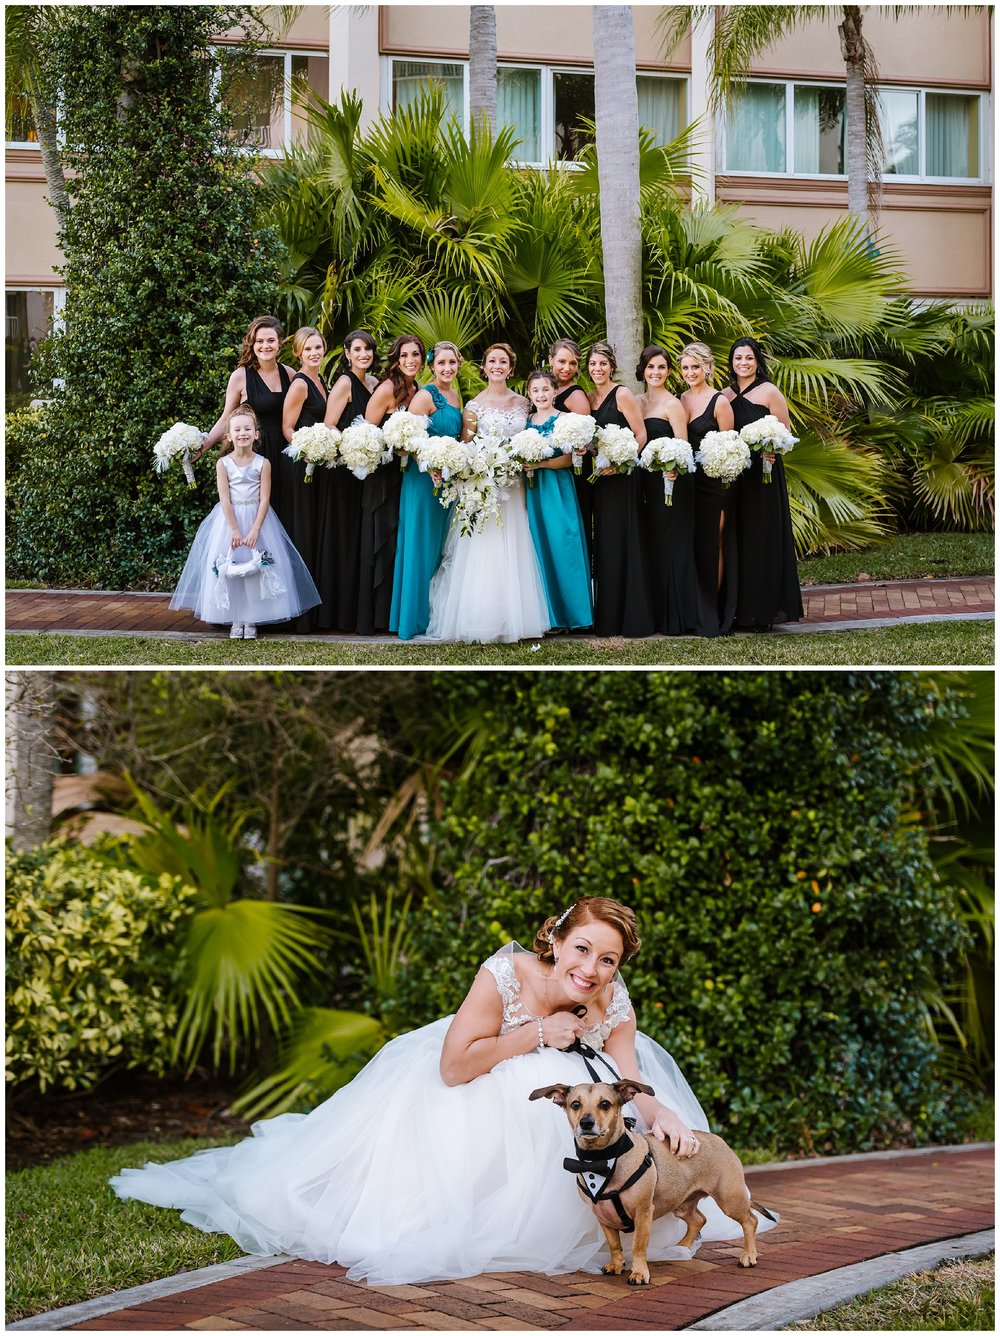 Tampa-wedding-photography-ruth-eckerd-hall-gatsby-unique-dramatic_0027.jpg